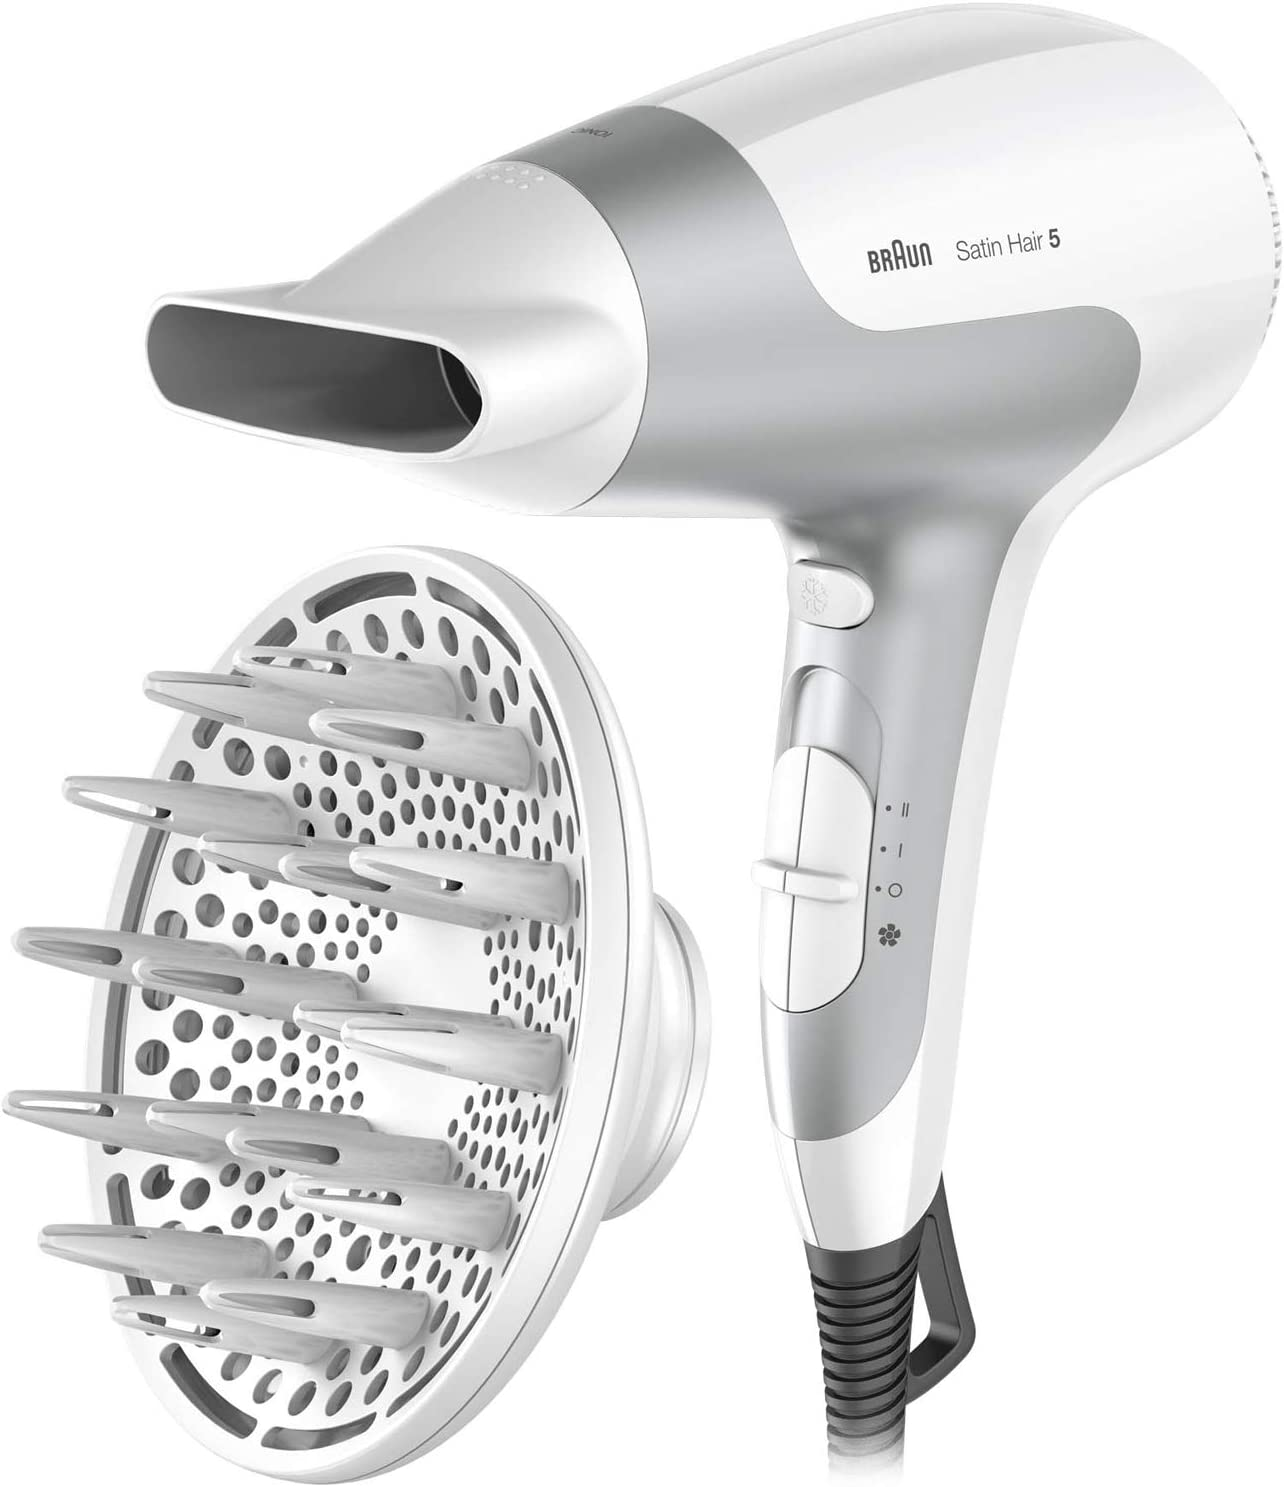 Braun Satin Hair 5 PowerPerfection HD585 - Secador de pelo potente y rápido con tecnología iónica